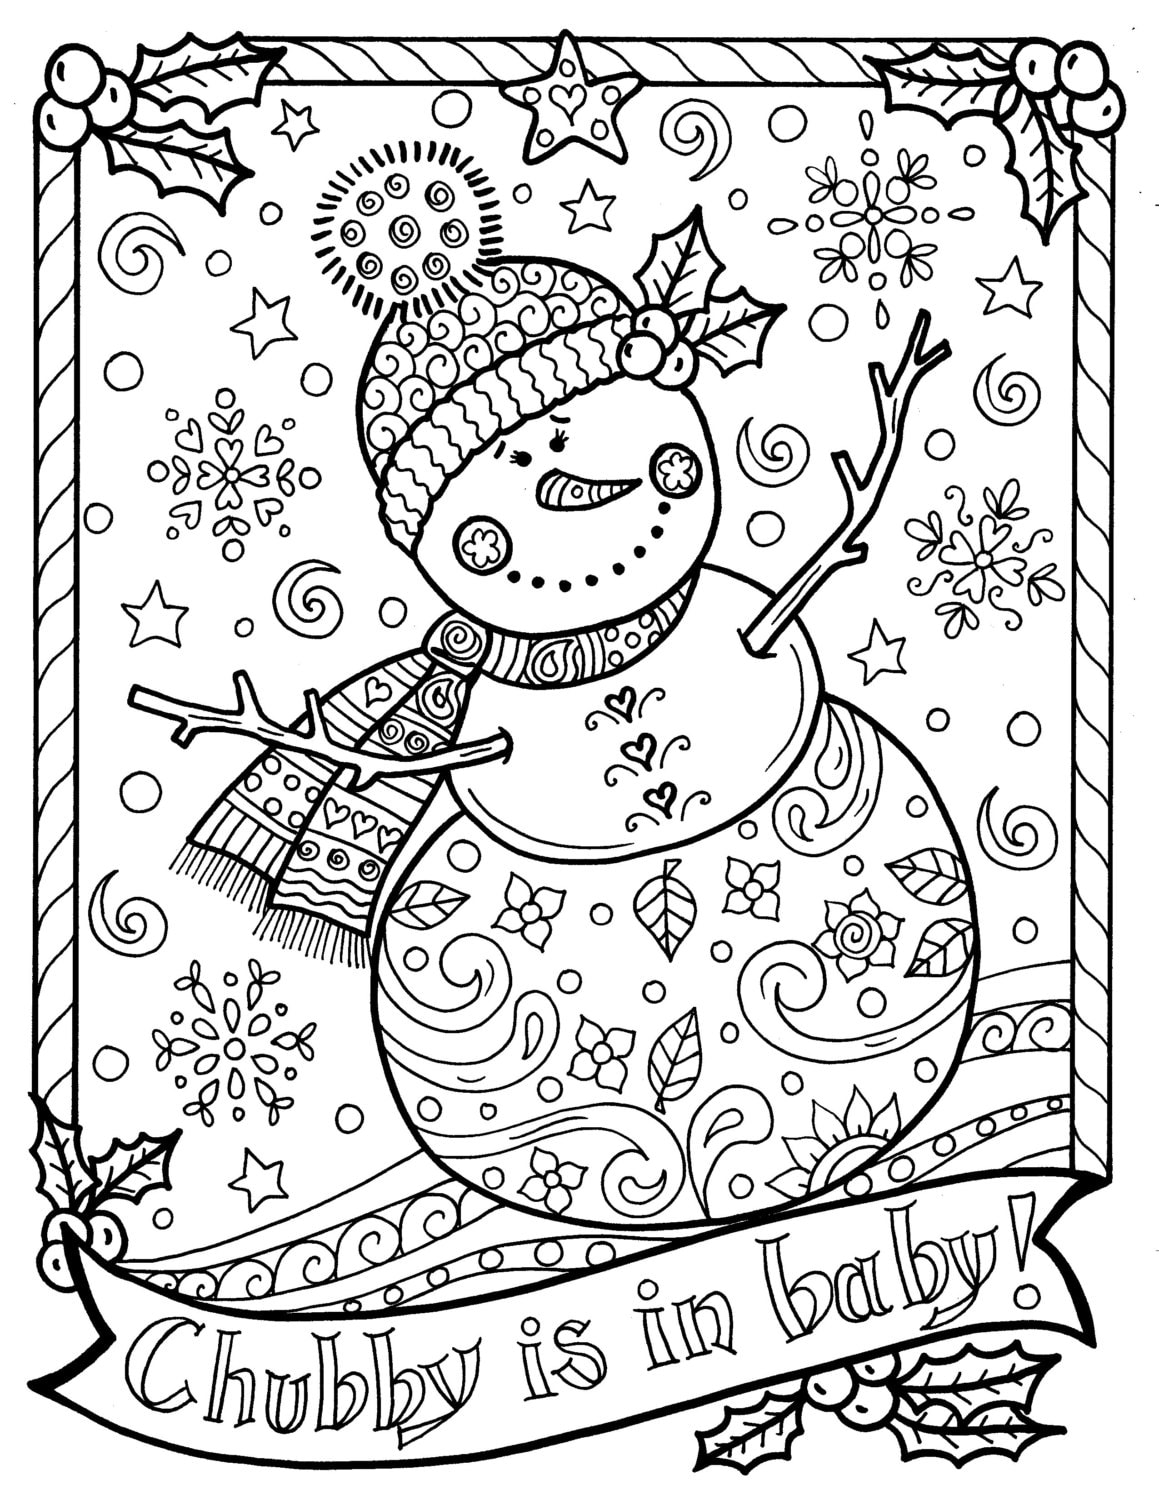 snowman coloring page chubby christmas adult color holidays etsy. Black Bedroom Furniture Sets. Home Design Ideas